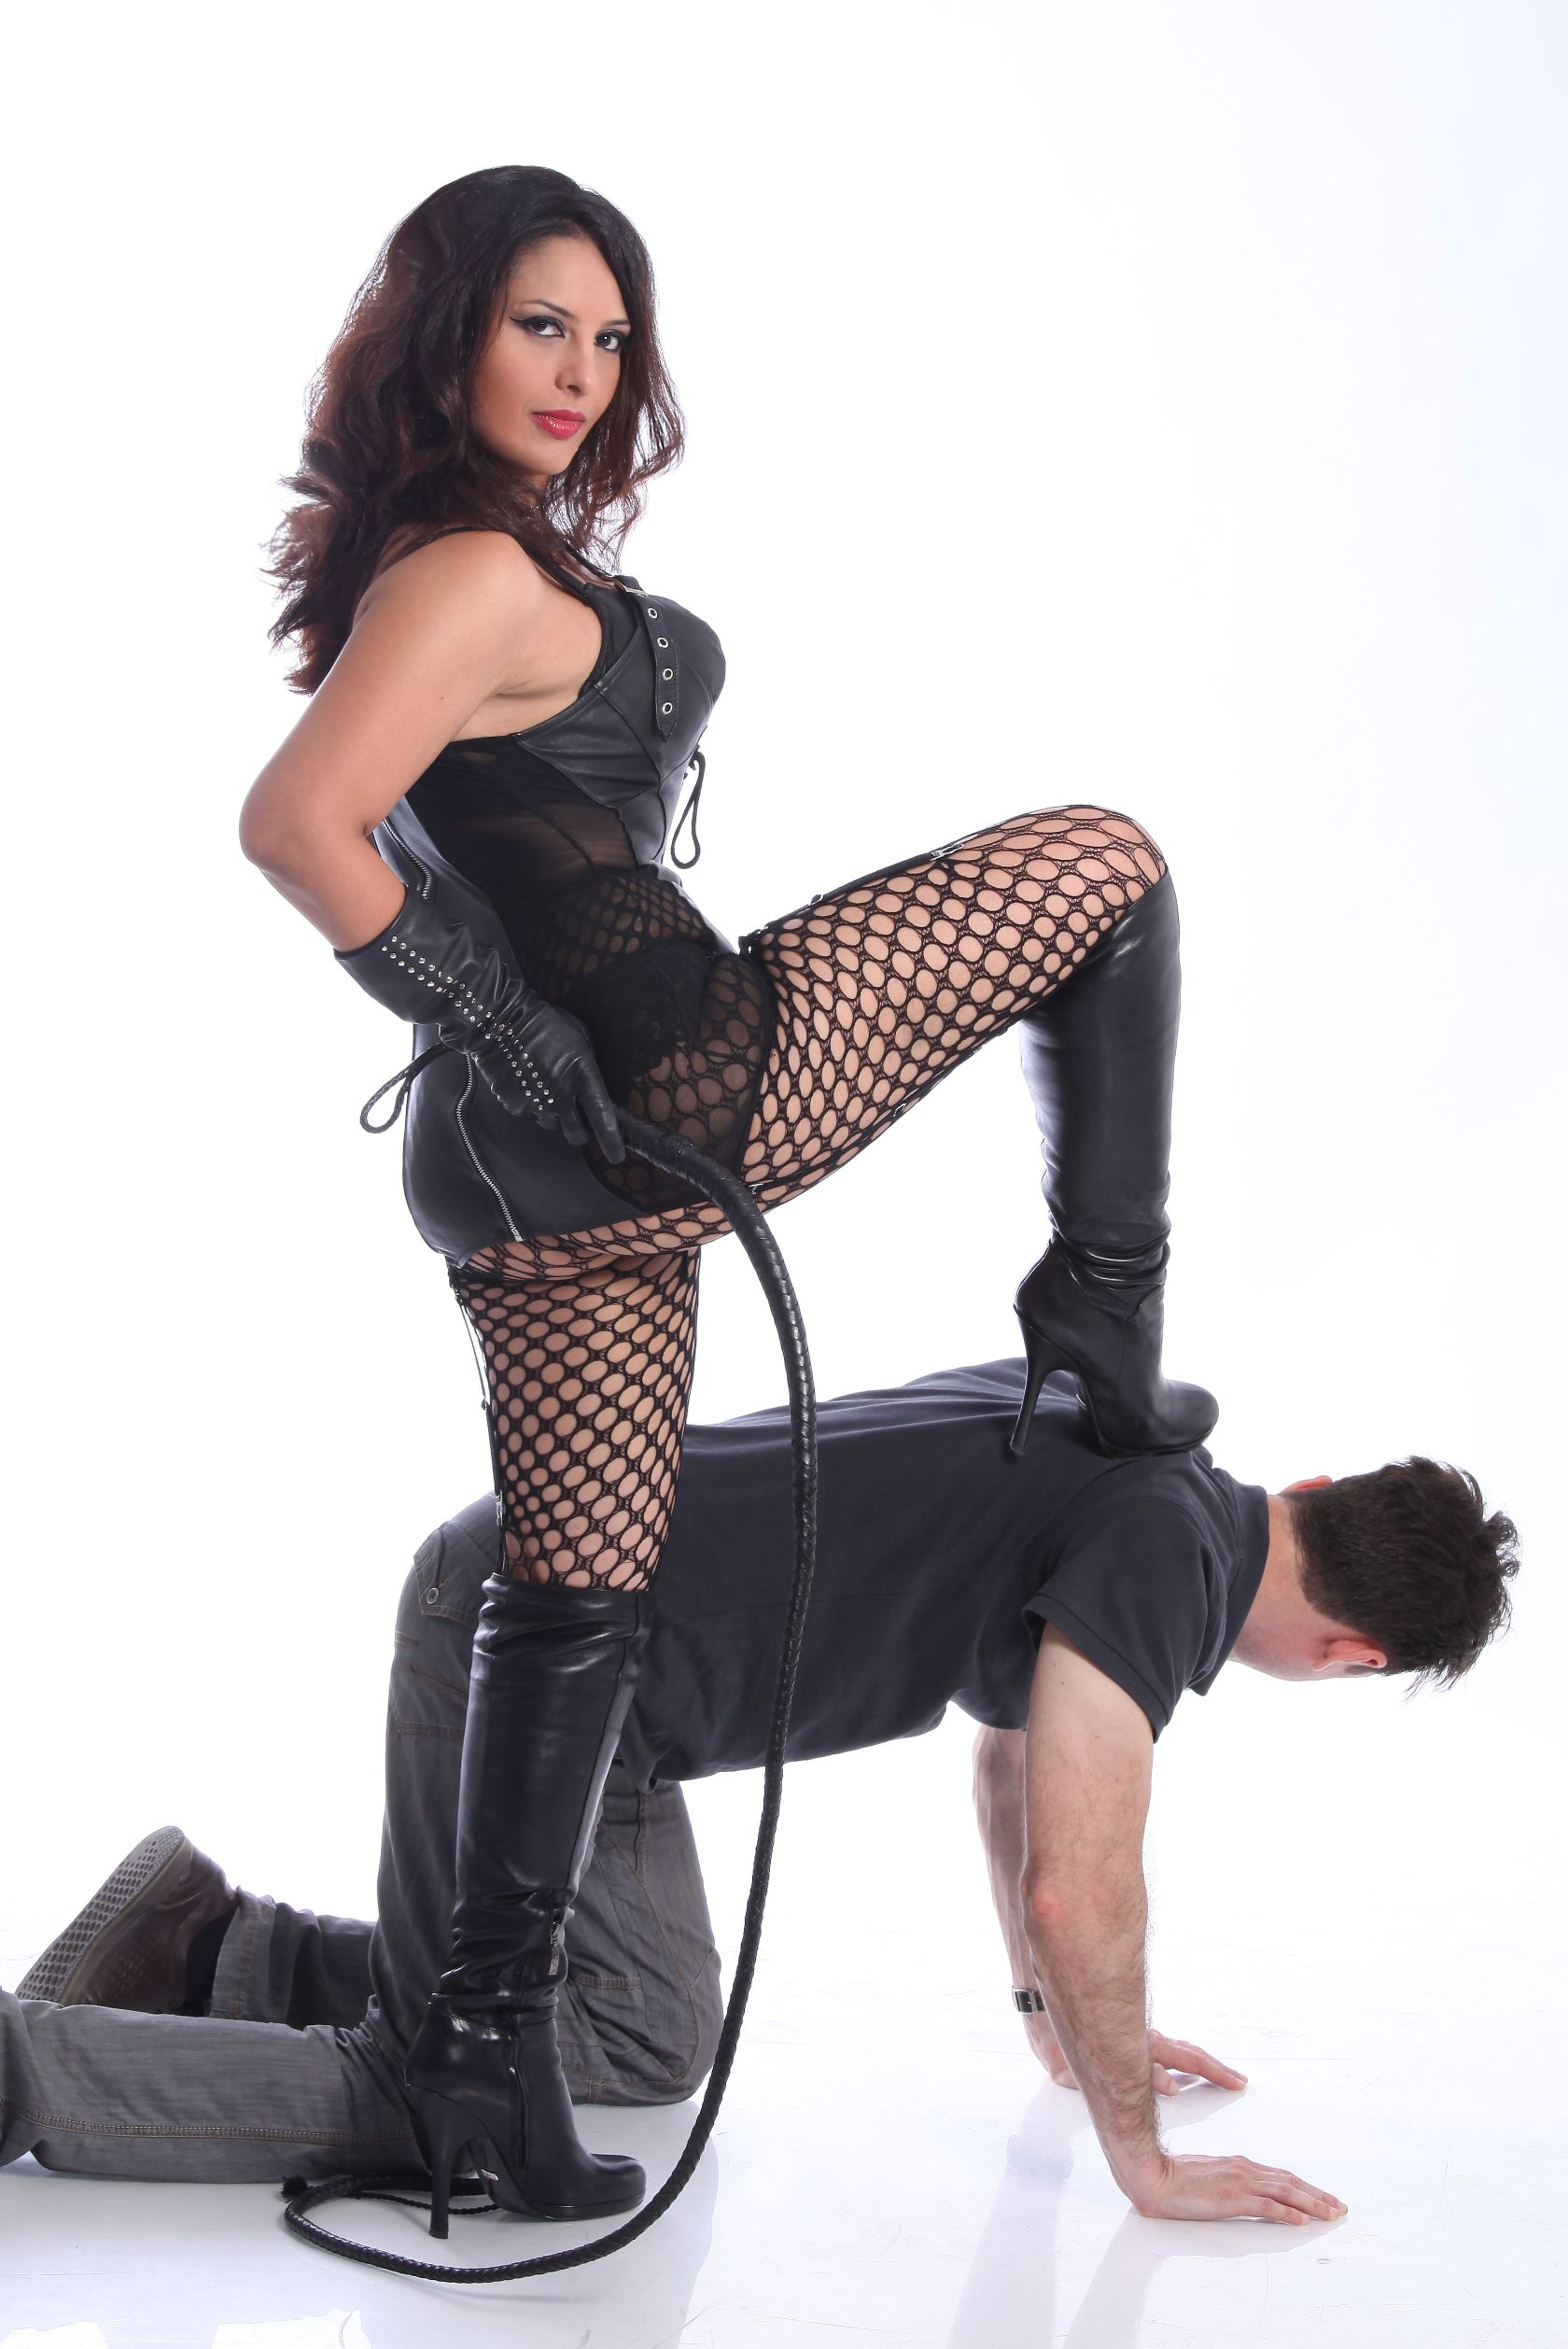 Most Kinky Countries In The World